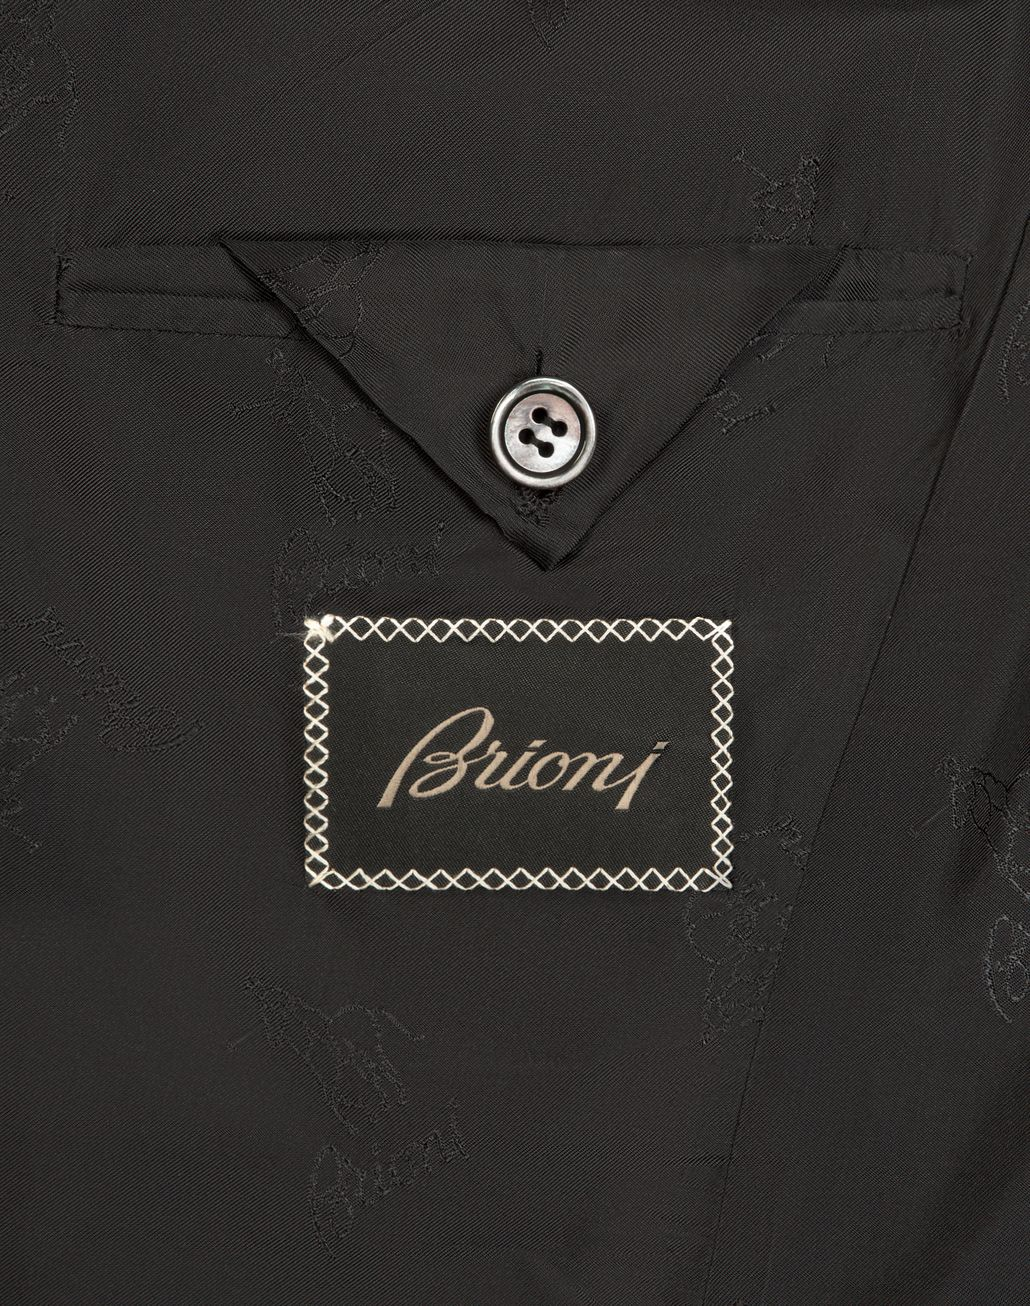 BRIONI Giacca Smoking Barberini Blu Navy  Smoking U b